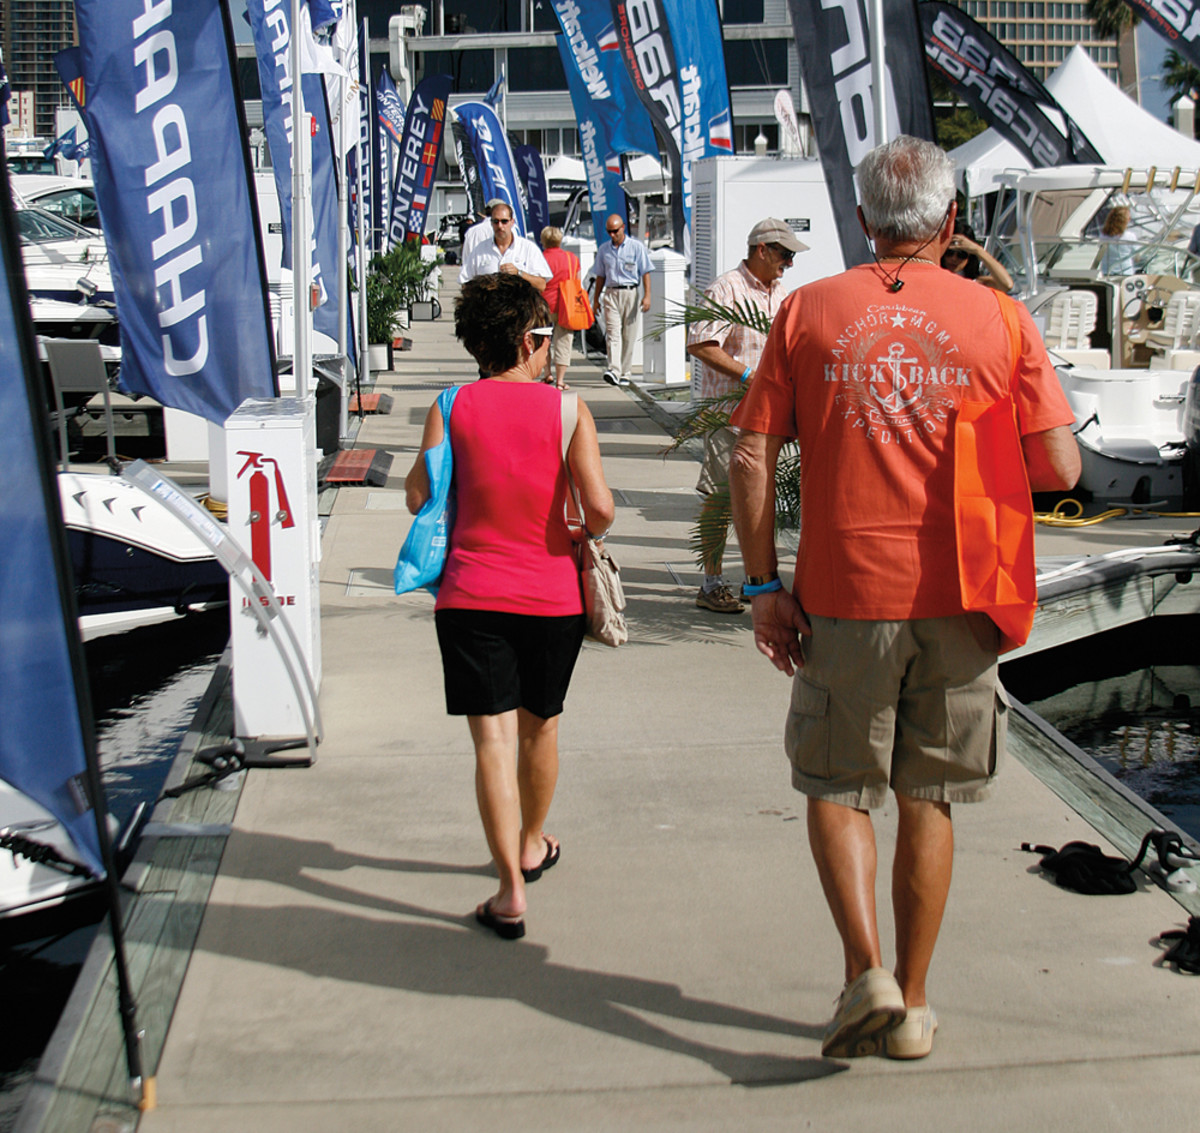 The Fort Lauderdale International Boat Show brings millions of dollars to the region.